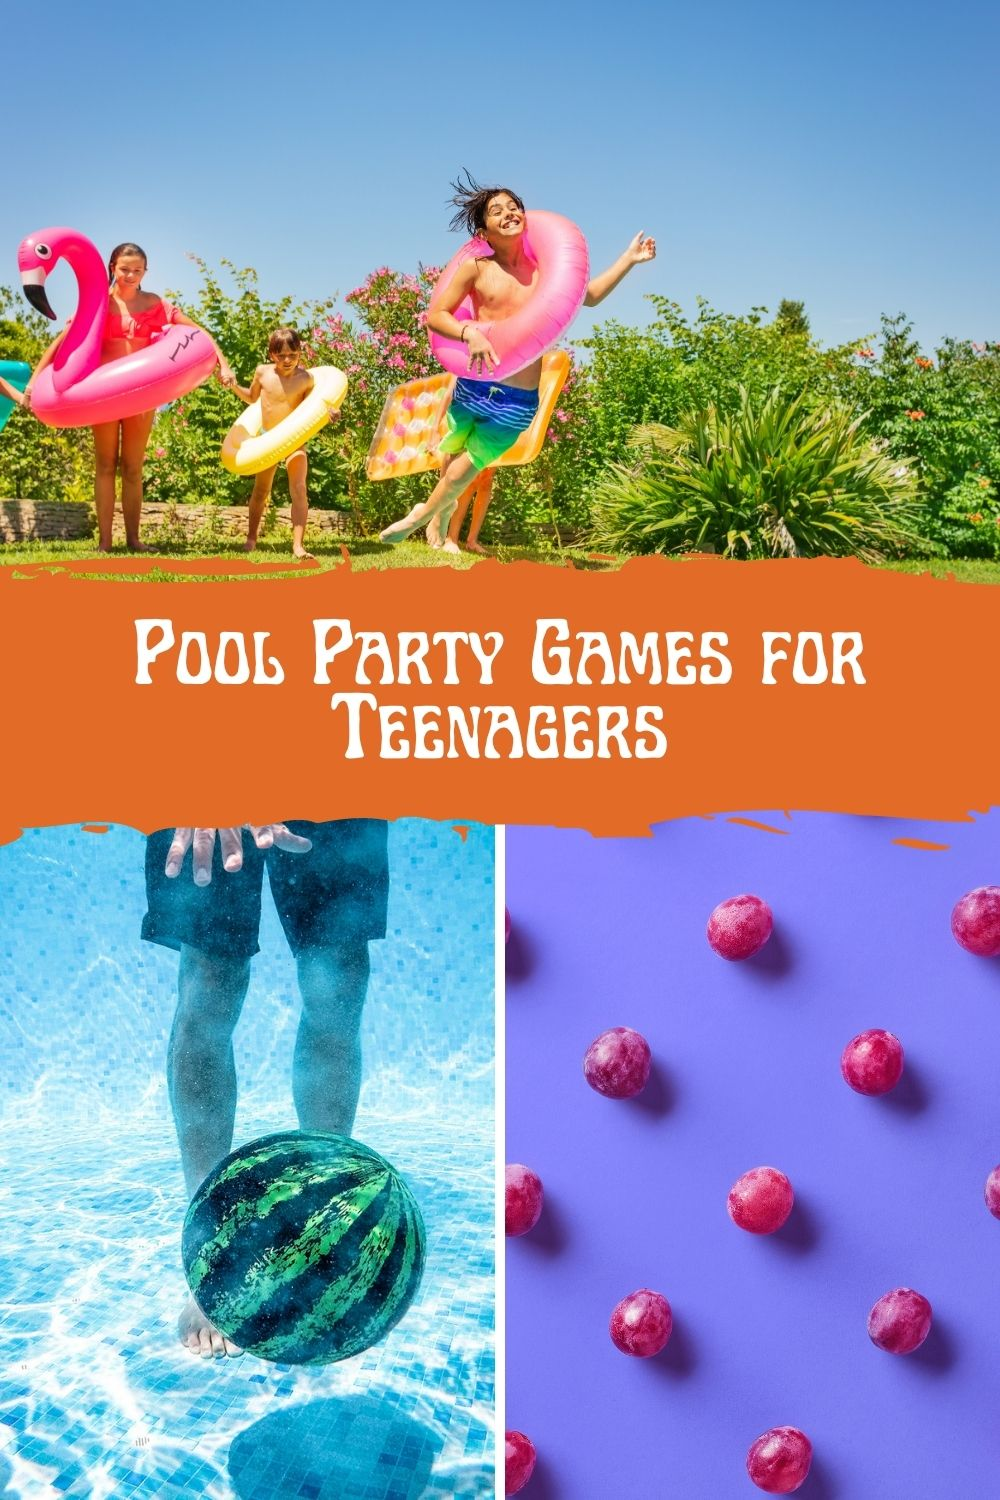 Pool Party Games for Teens